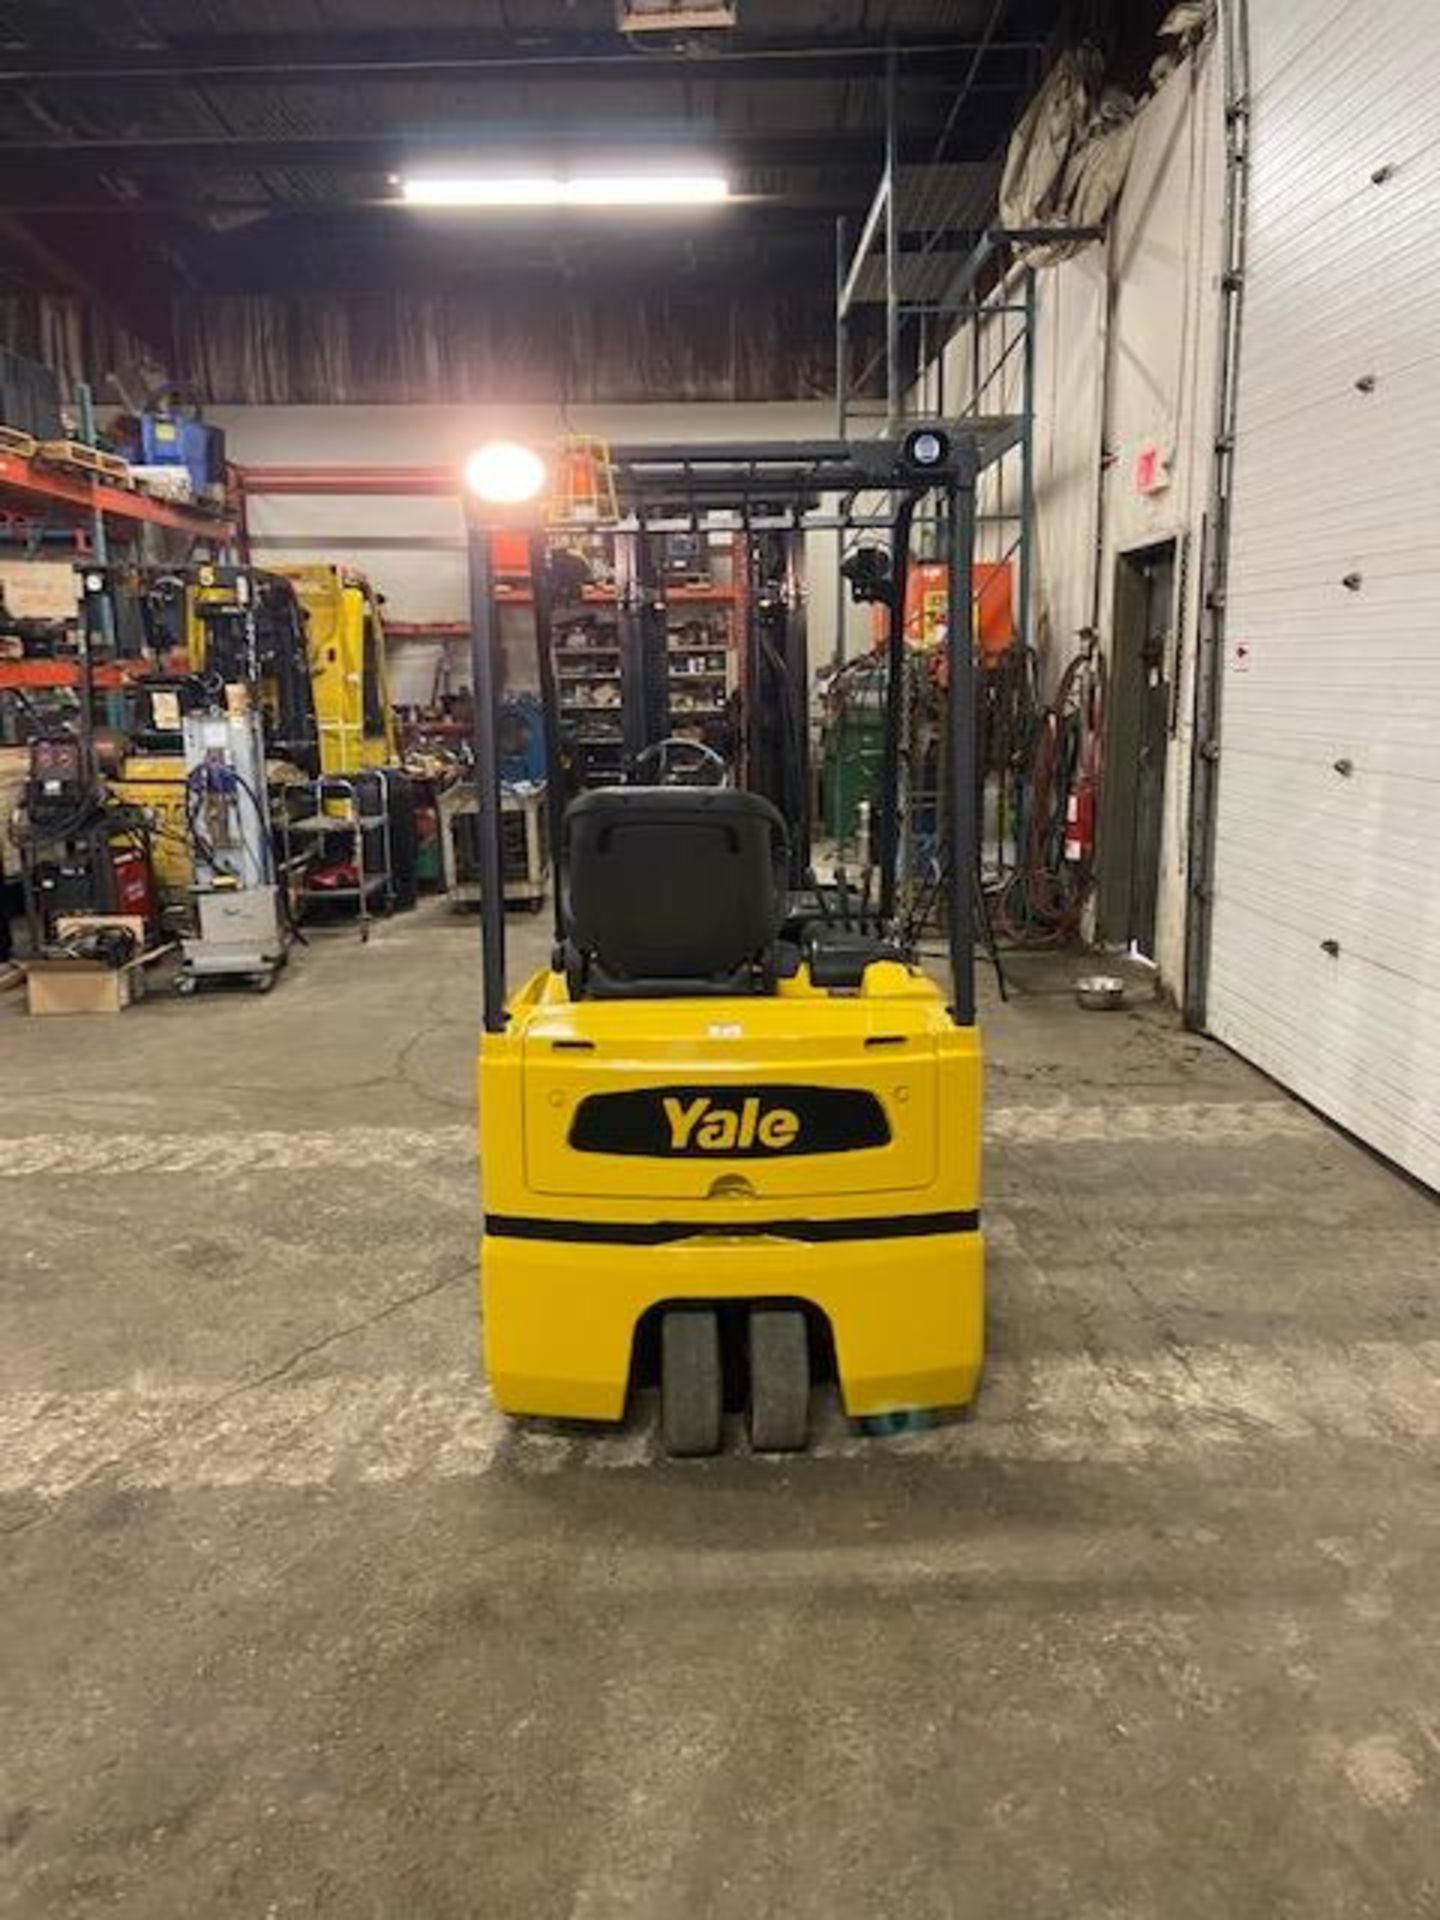 FREE CUSTOMS - Yale 4000lbs Capacity 3-wheel Forklift Electric with 3-stage mast with sideshift with - Image 3 of 3